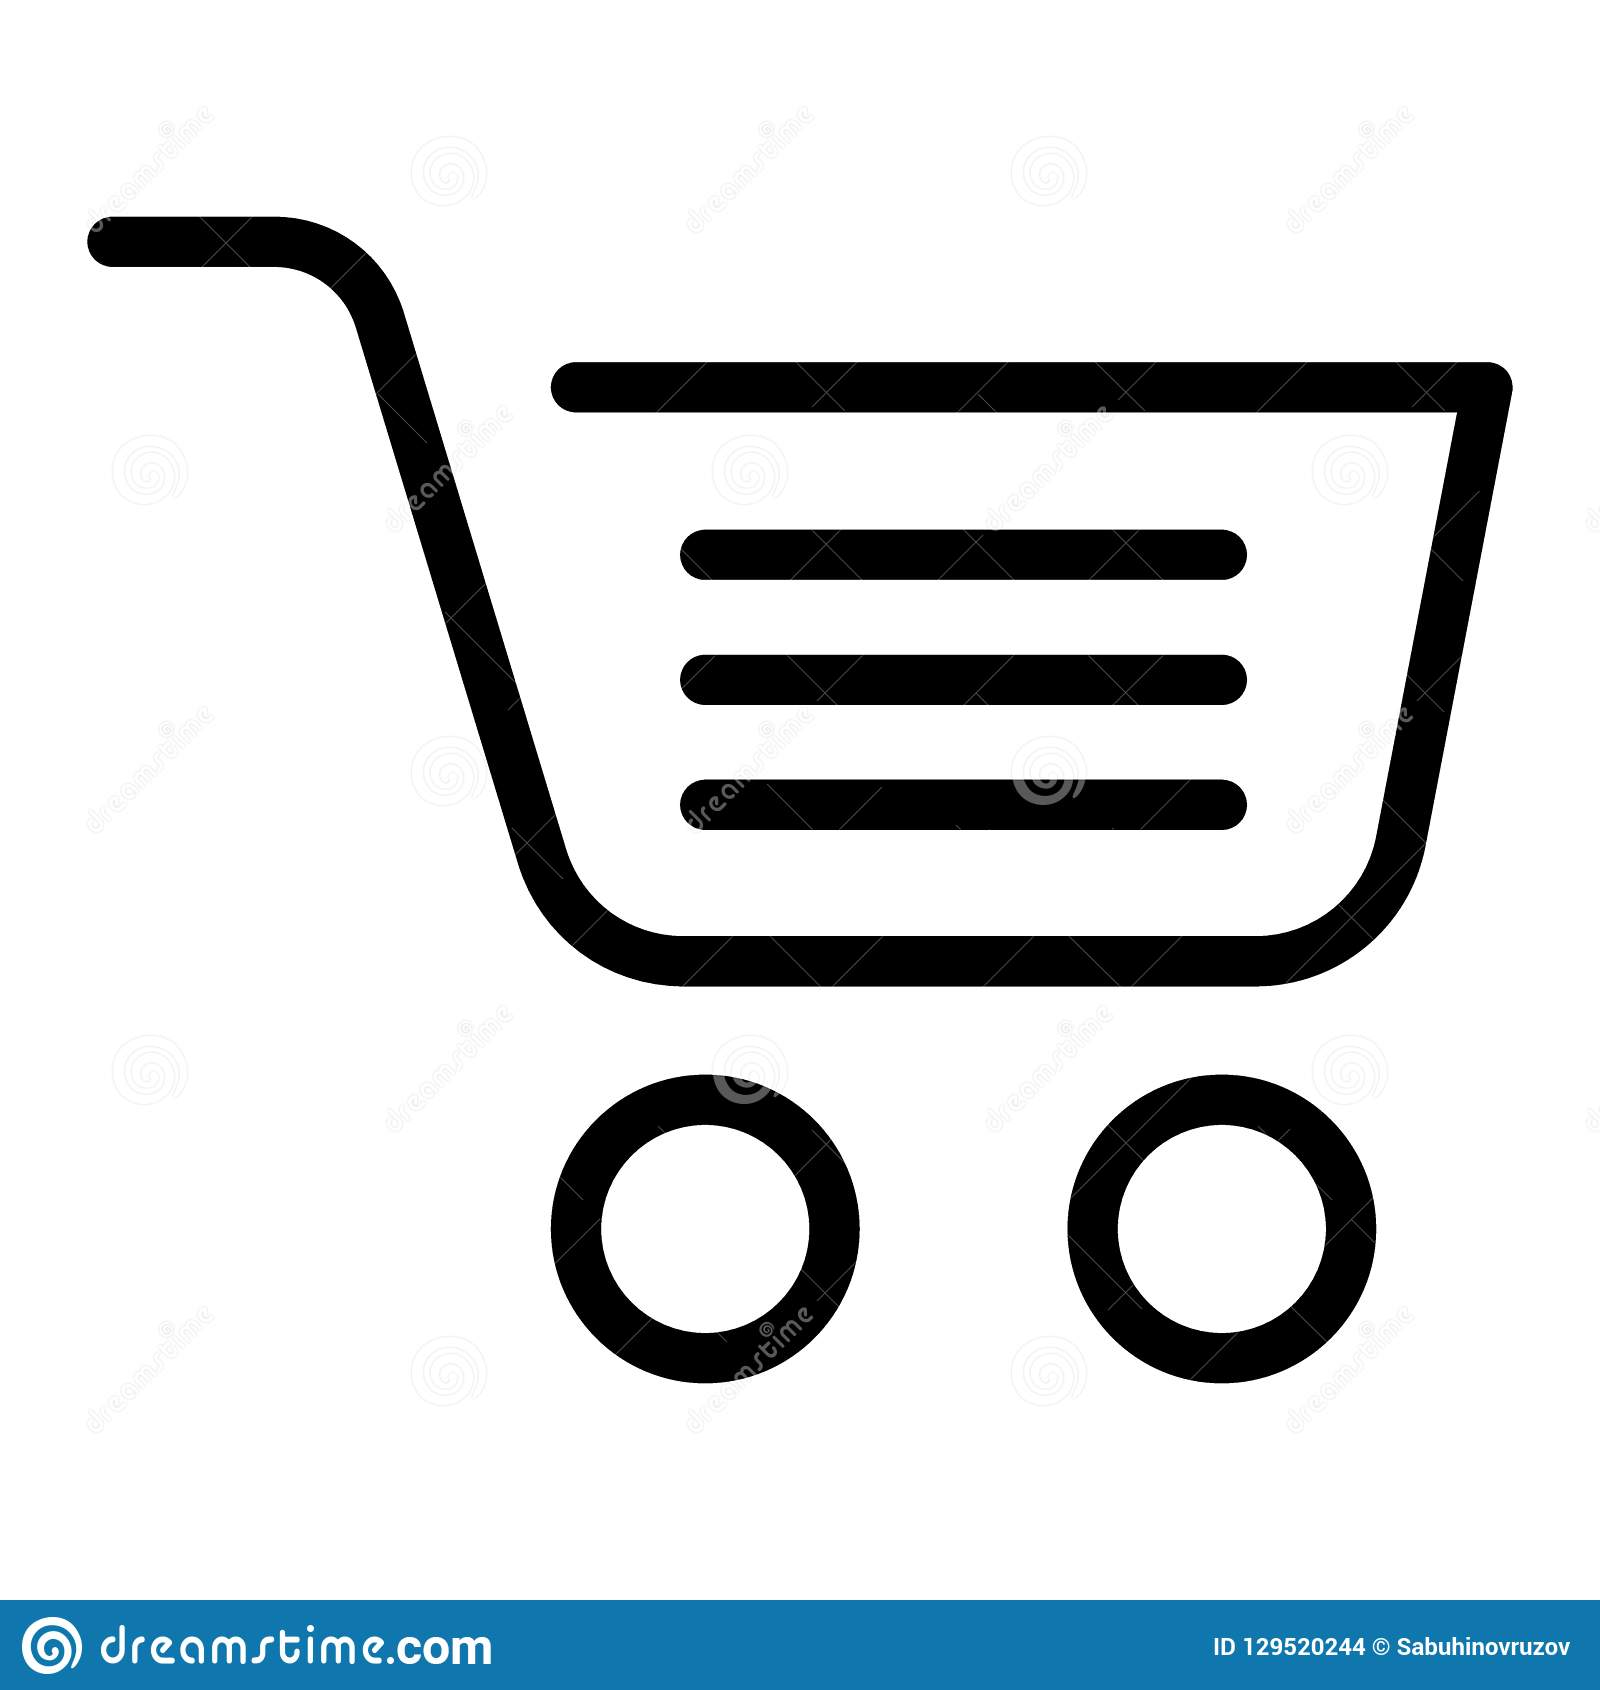 Full shopping cart line icon. Market basket vector illustration isolated on white. Shopping trolley symbol outline style design, d